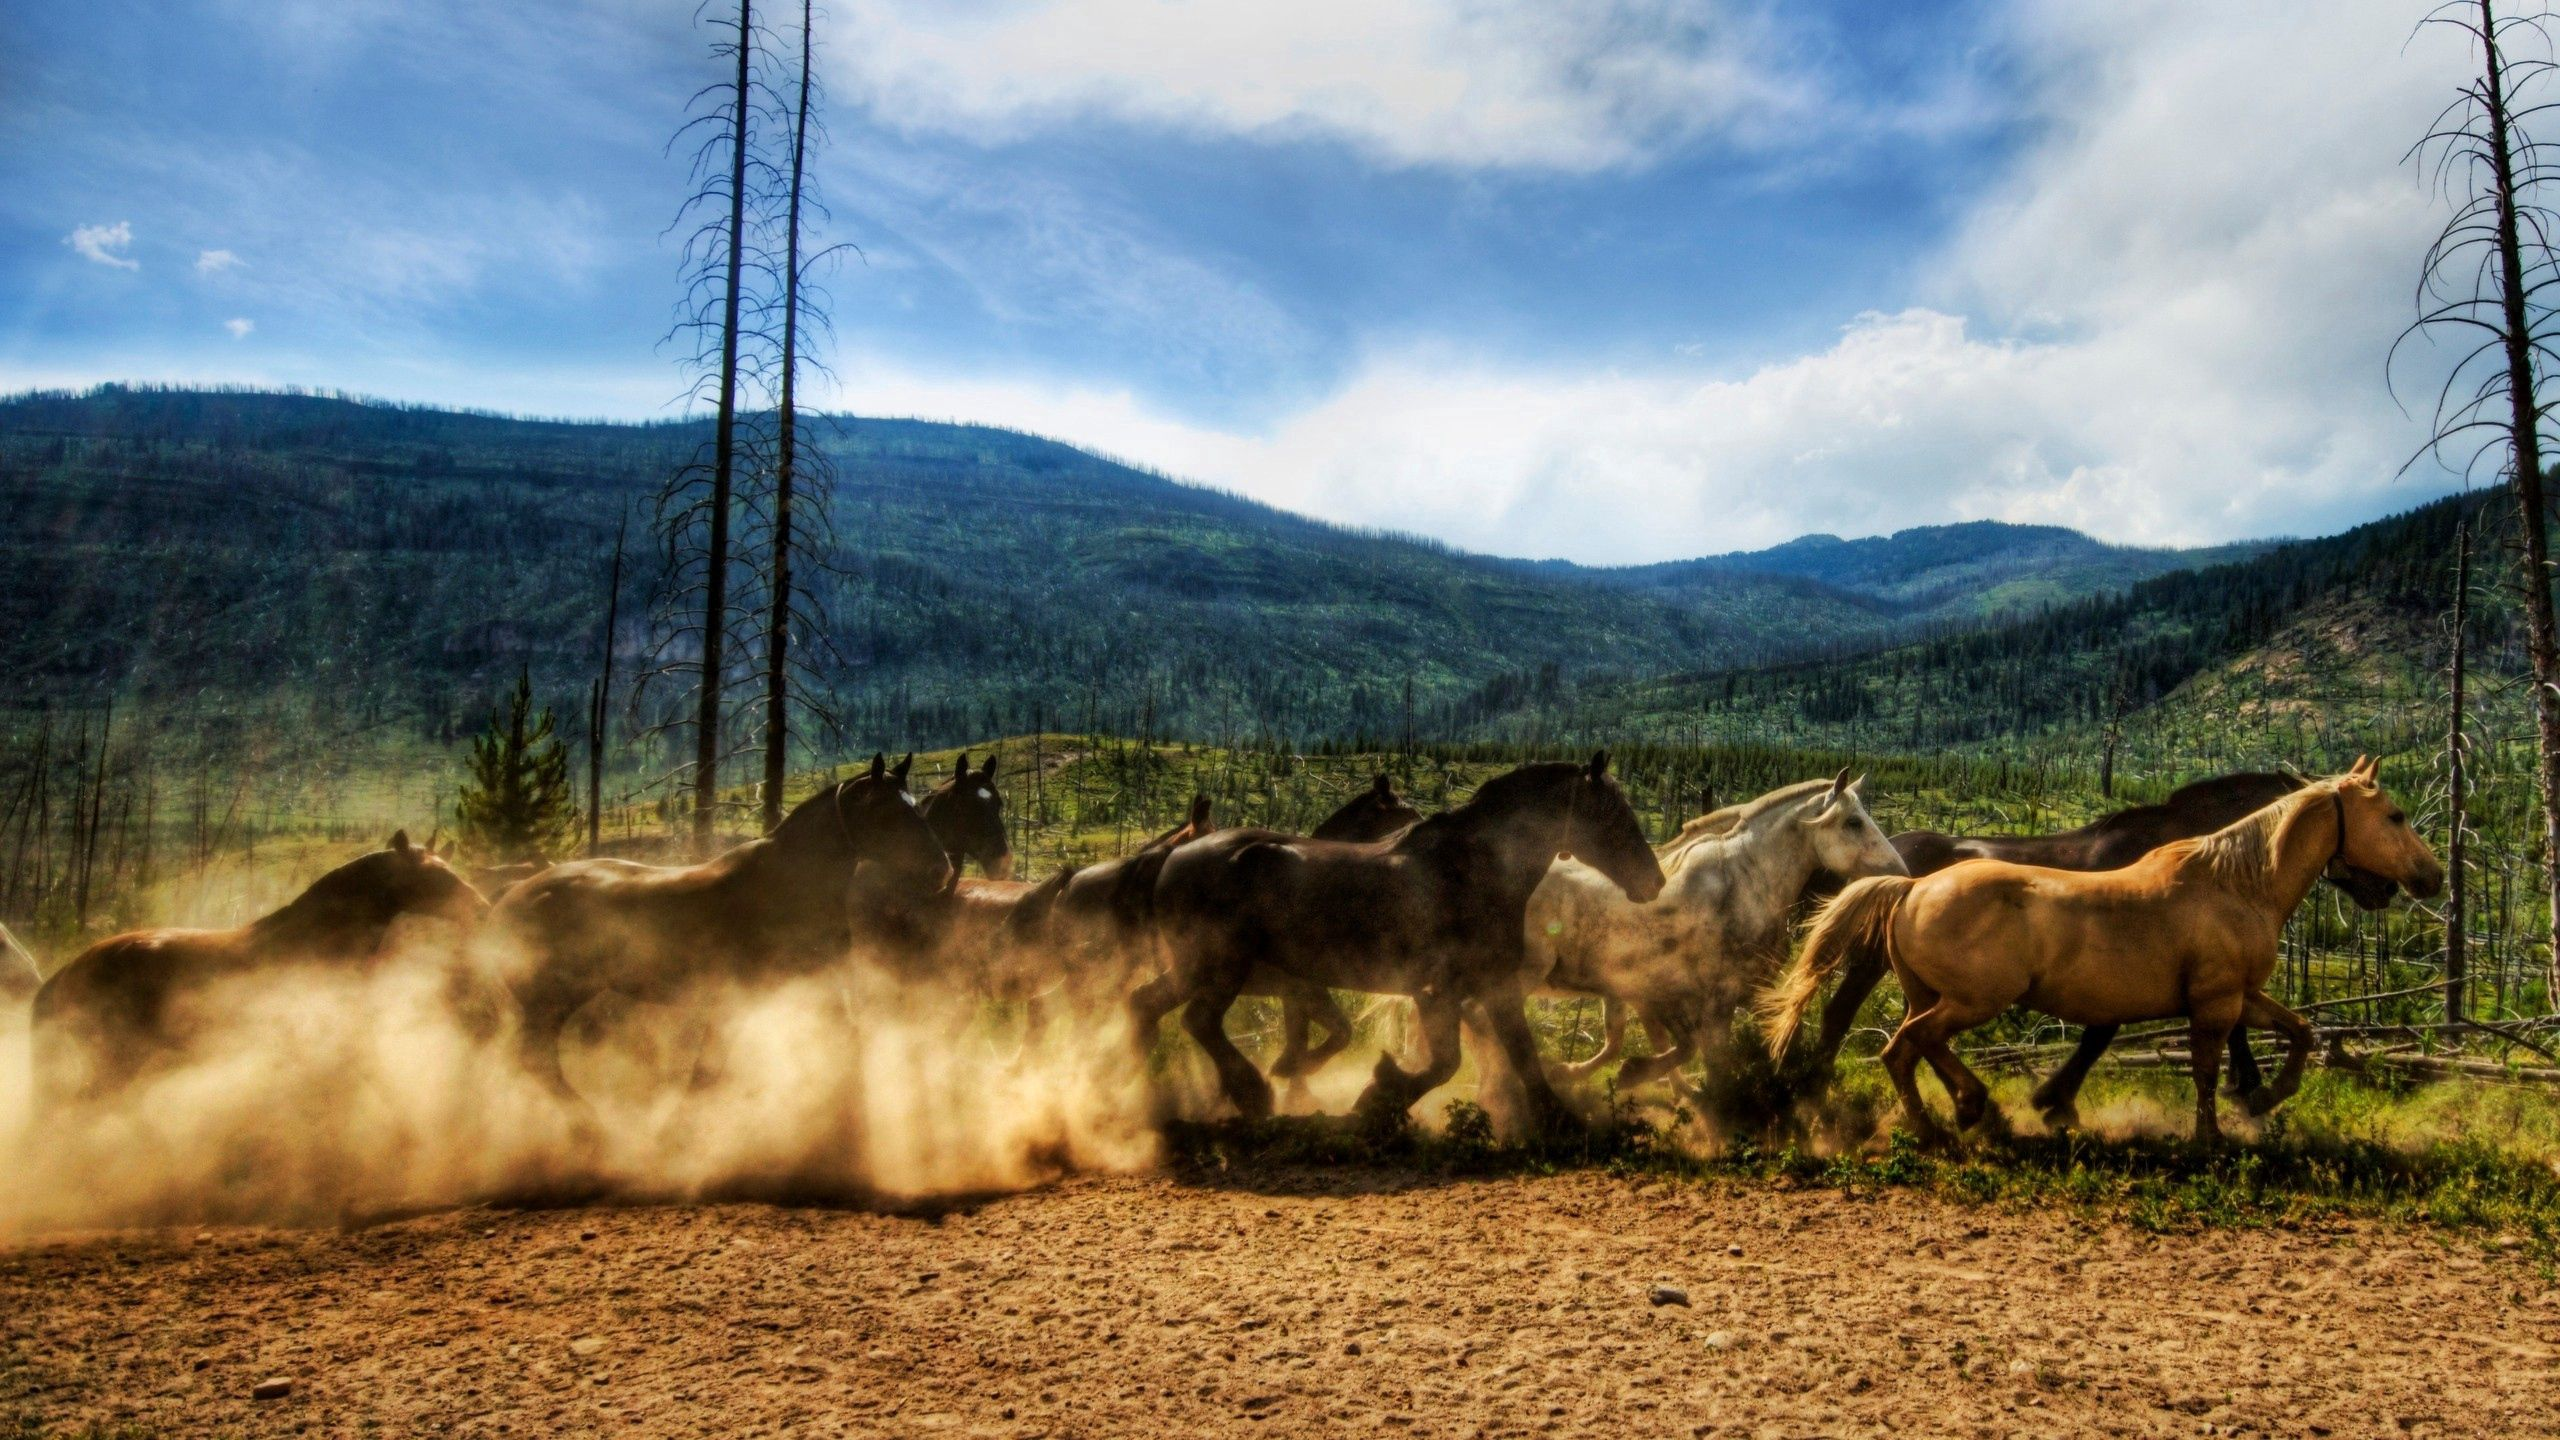 88951 download wallpaper Animals, Horses, Dust, Corral, Herd, Run, Running screensavers and pictures for free